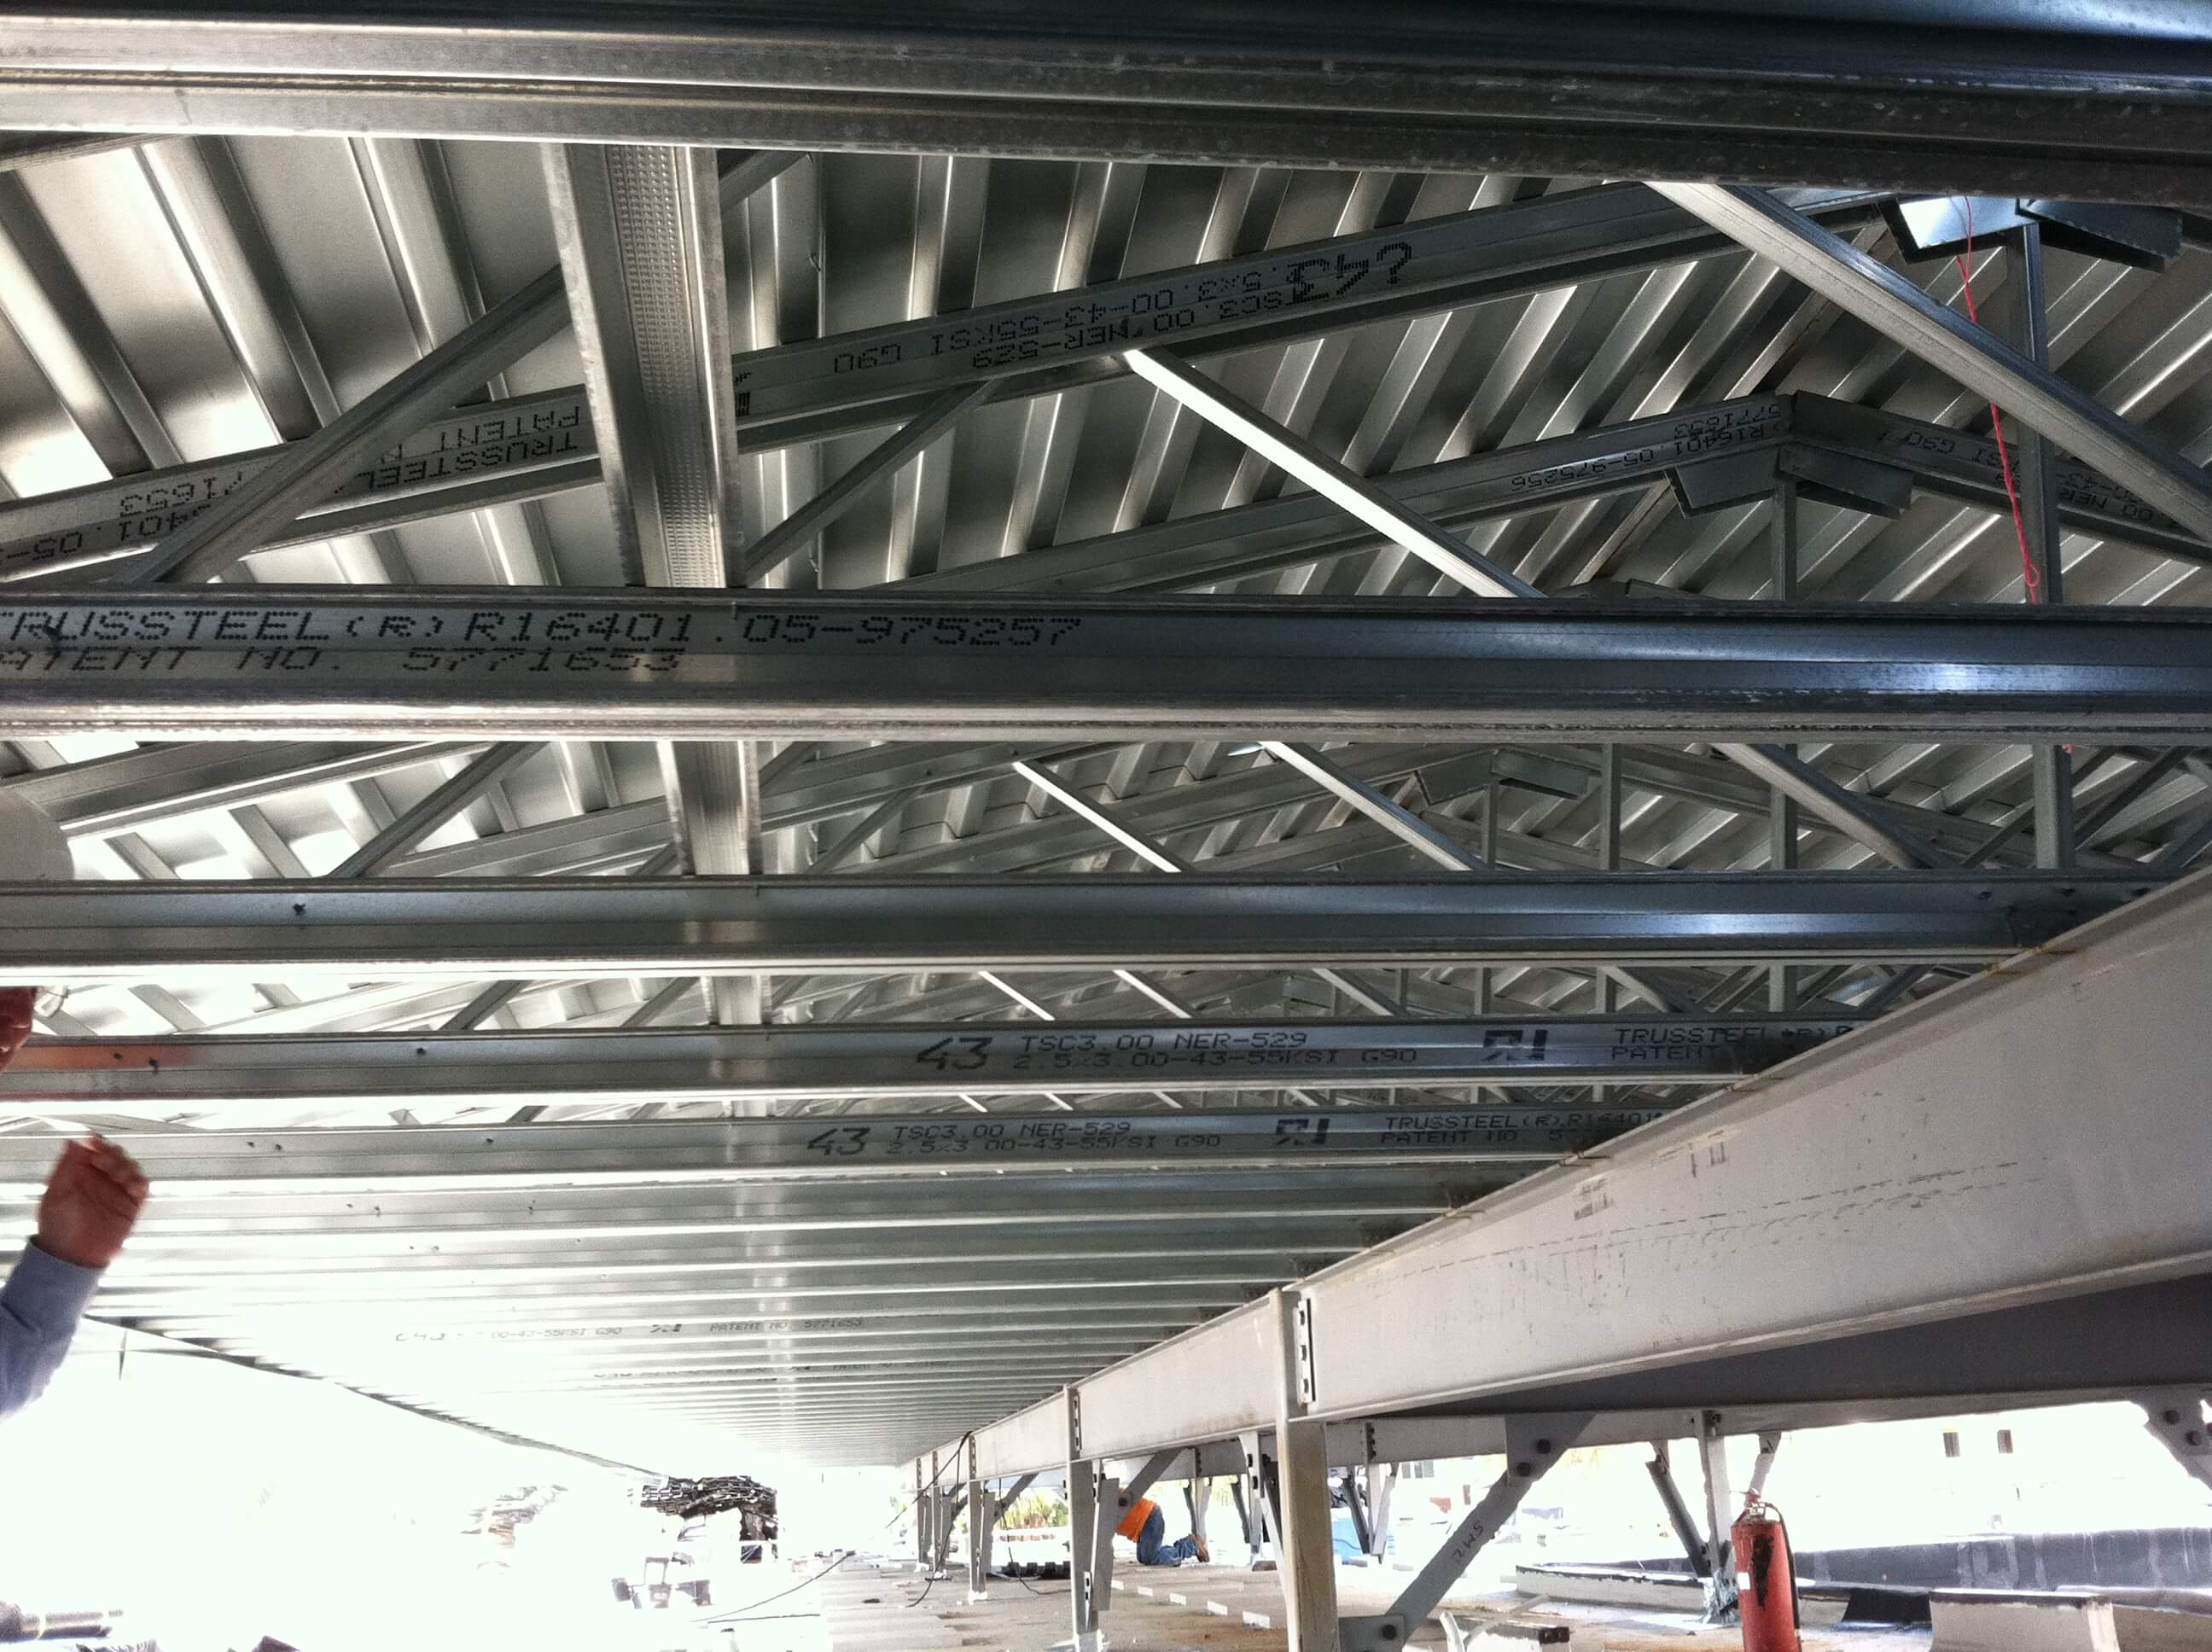 View of steel trusses from interior